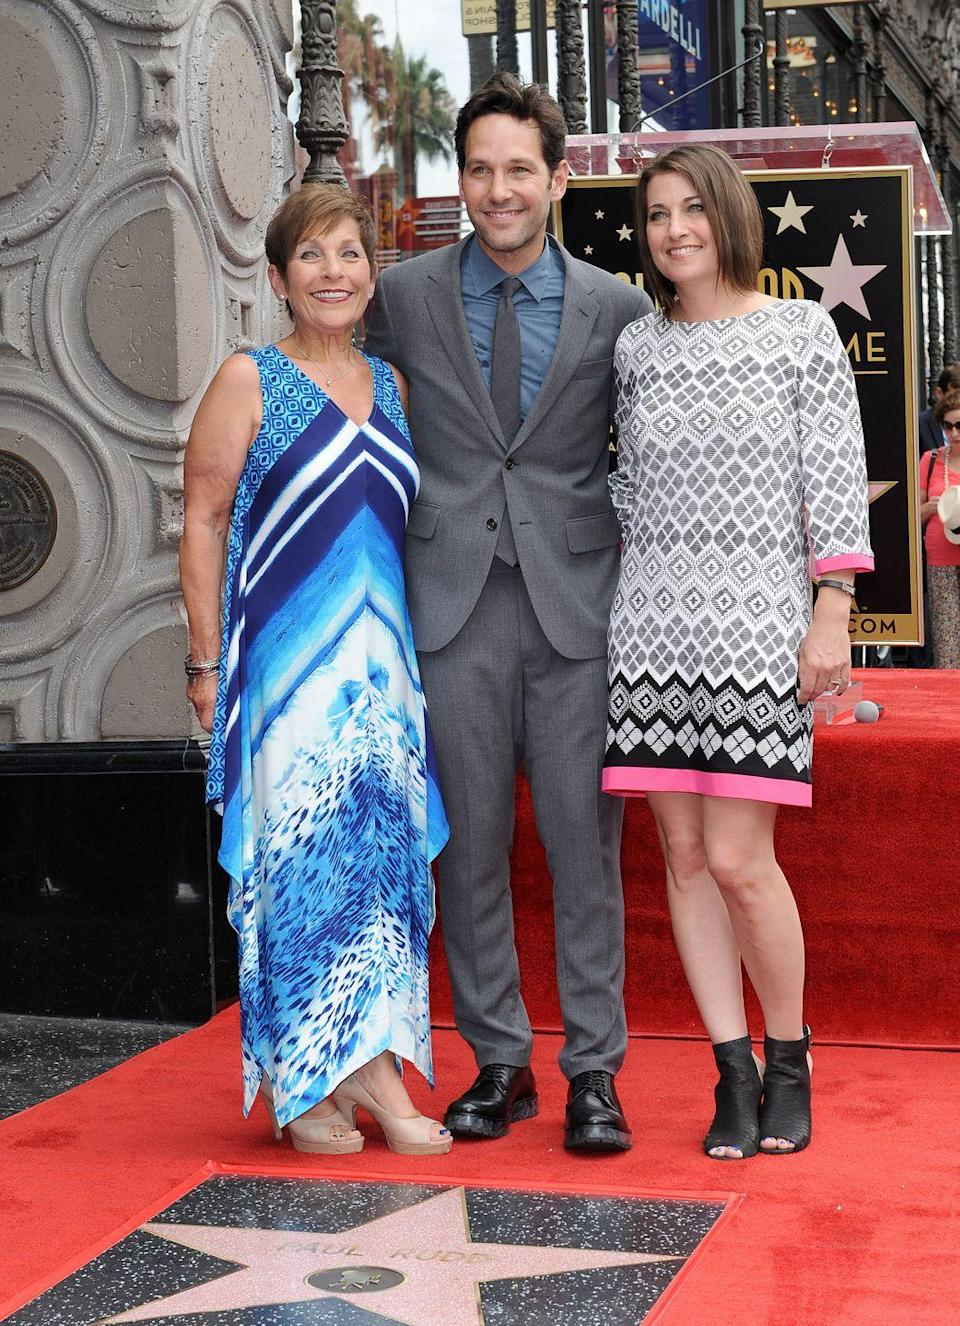 <p>Although Paul Rudd's sister, Mandi Rudd, has chosen a career away from Hollywood, we can't help but obsess over their similarities. As it turns out, Mandi, just like her brother, does not seem to age. </p>